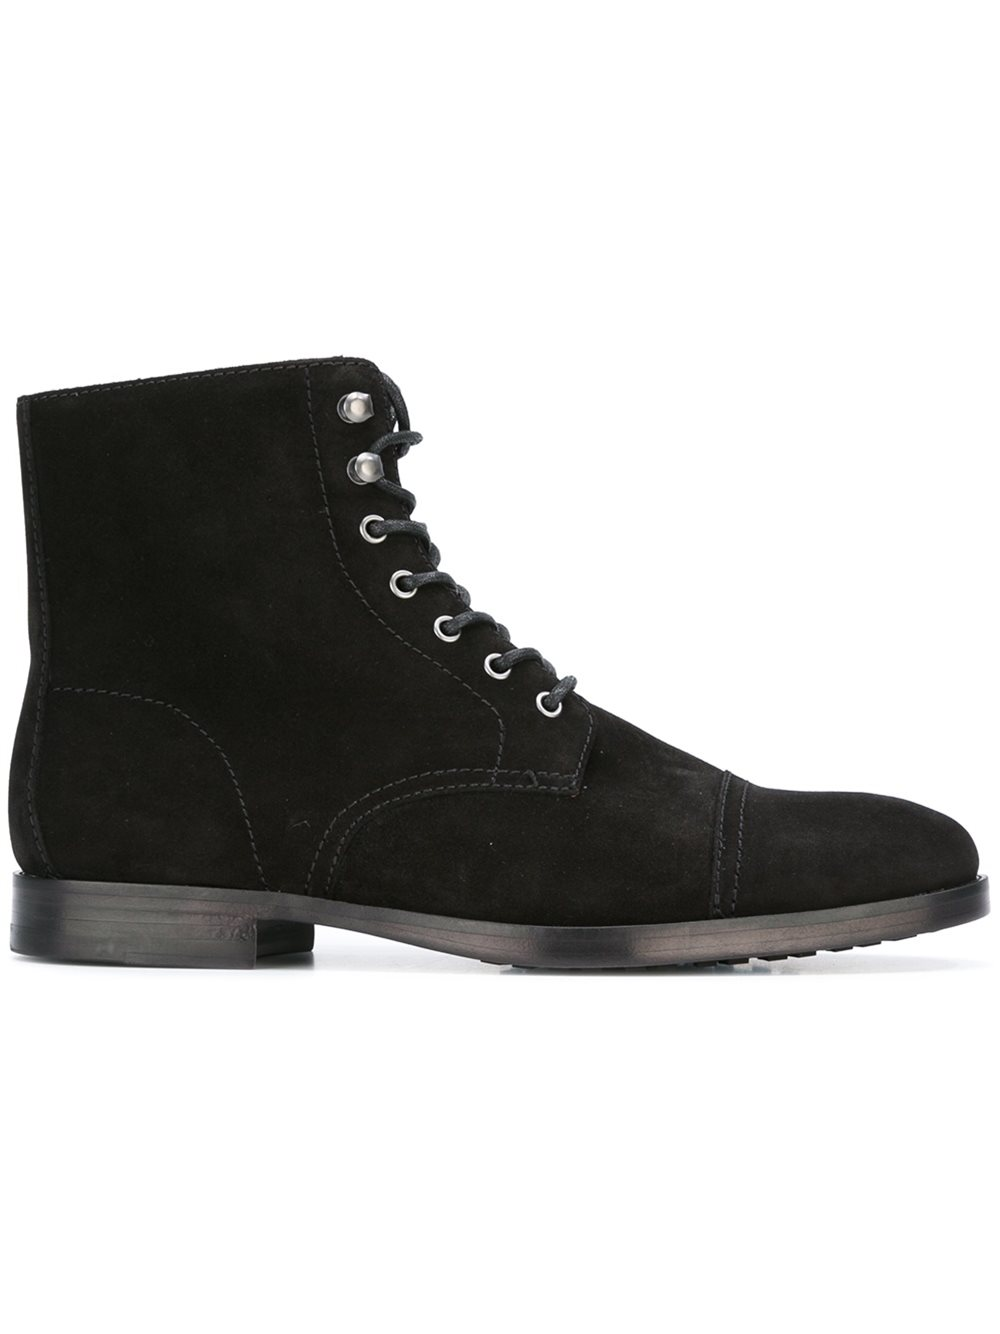 Handmade men fashion black suede lace up boots, Men's ankle boot